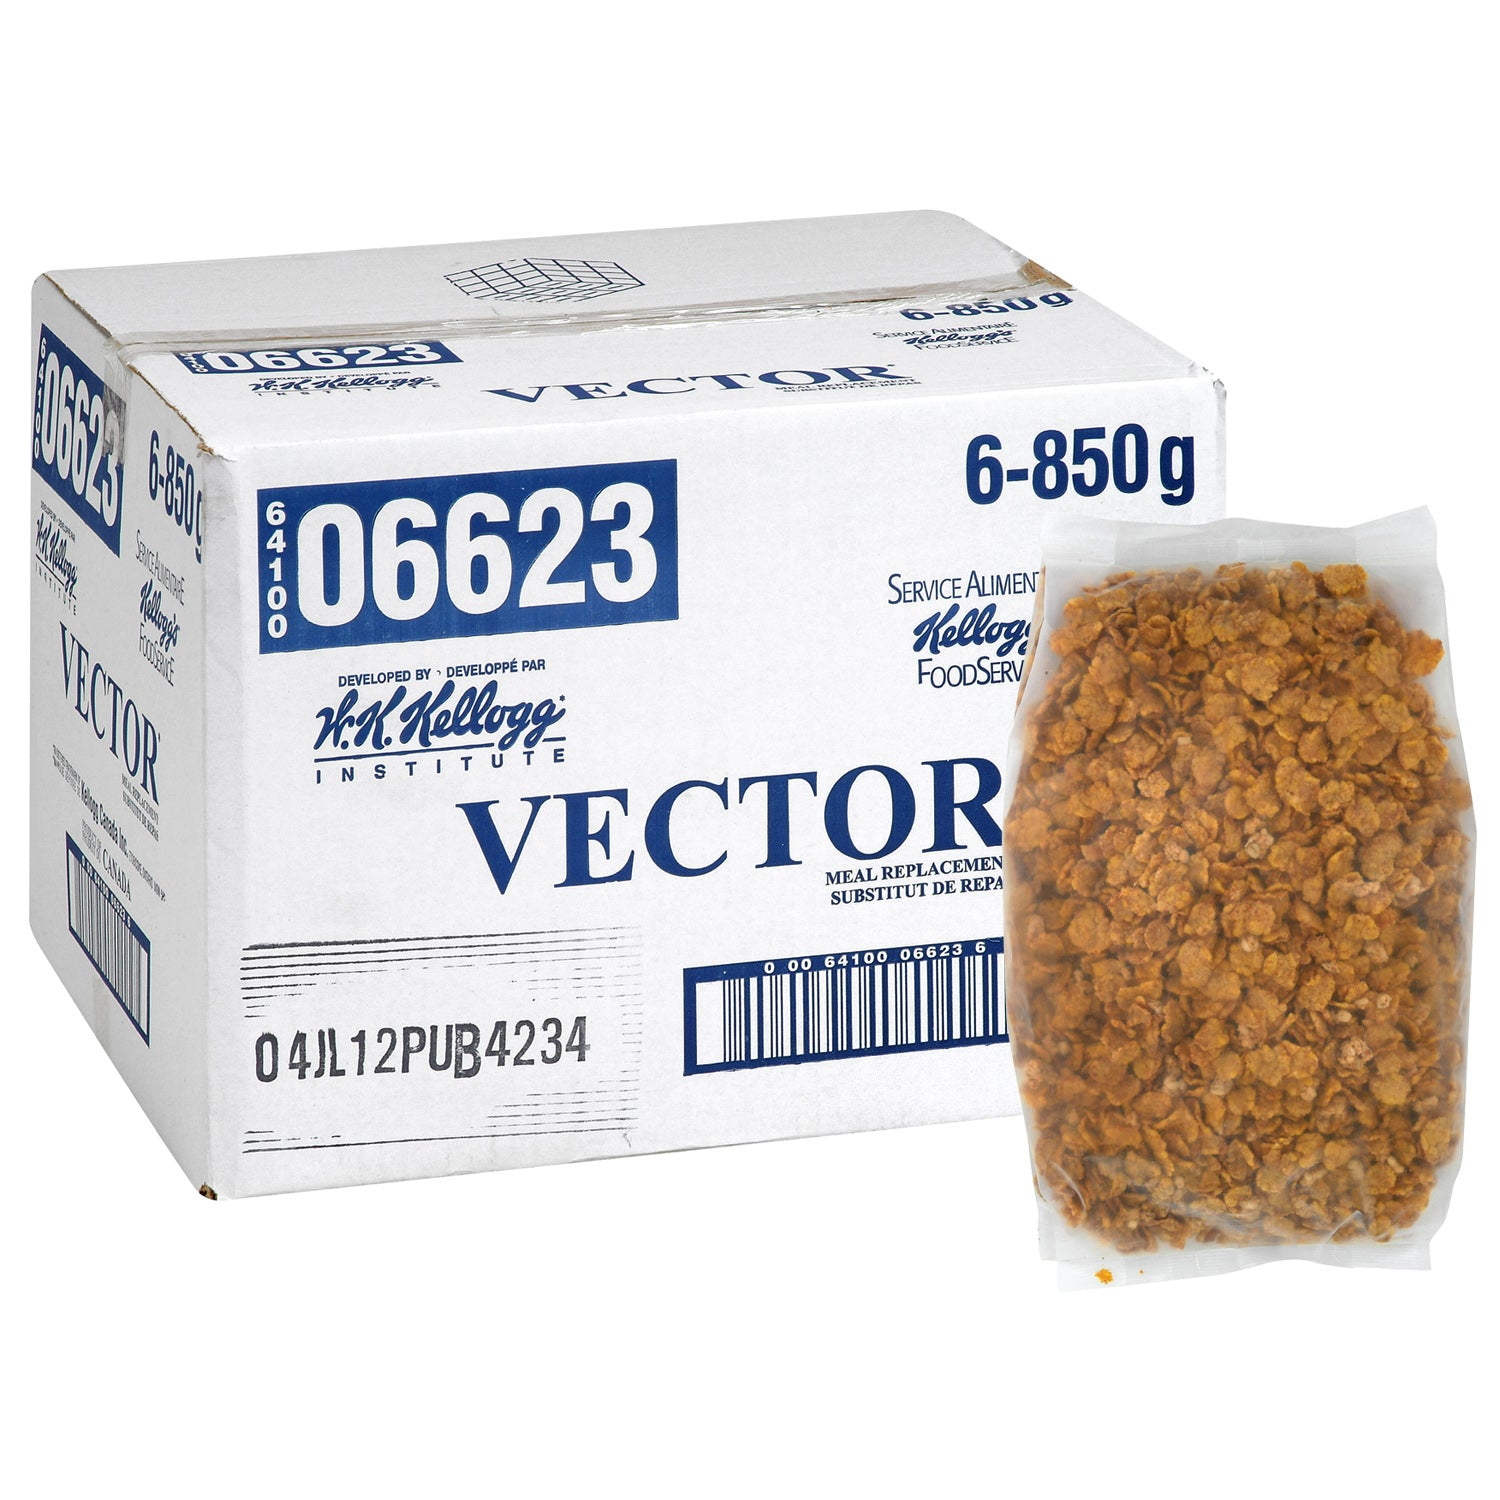 Kellogg's Vector Cereal 850 g - 6 Pack [$9.17/bag]